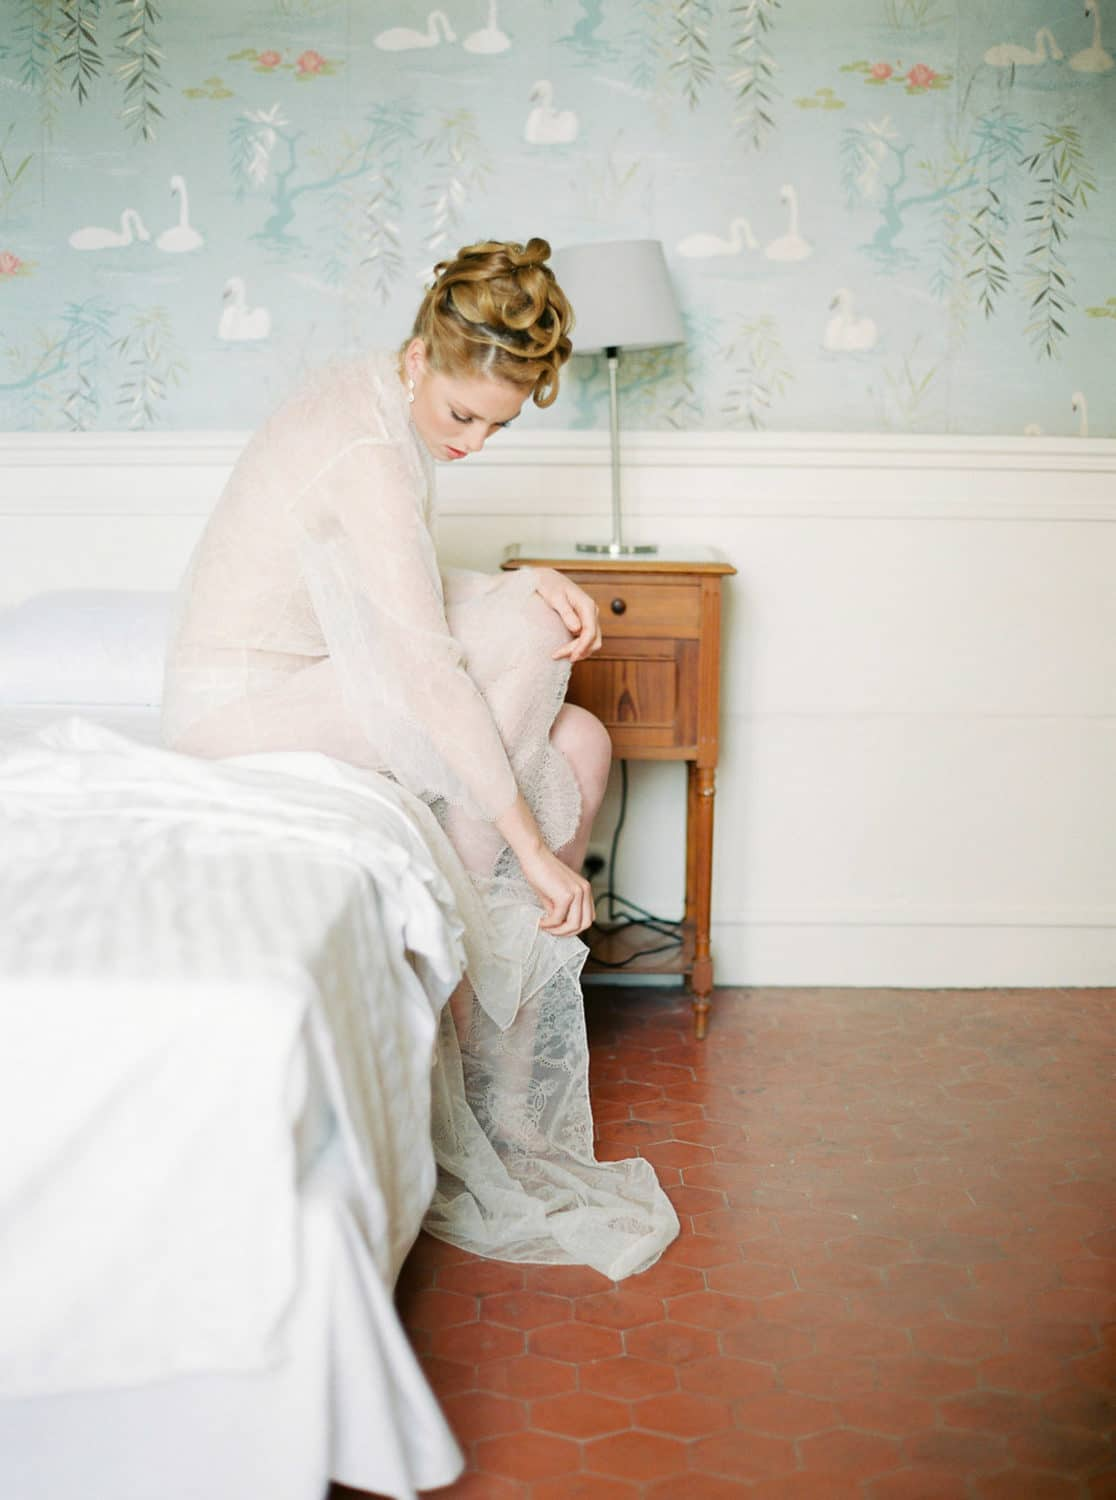 fineart photgraphy, fineart bridal boudoir session, creative director, brand stylism